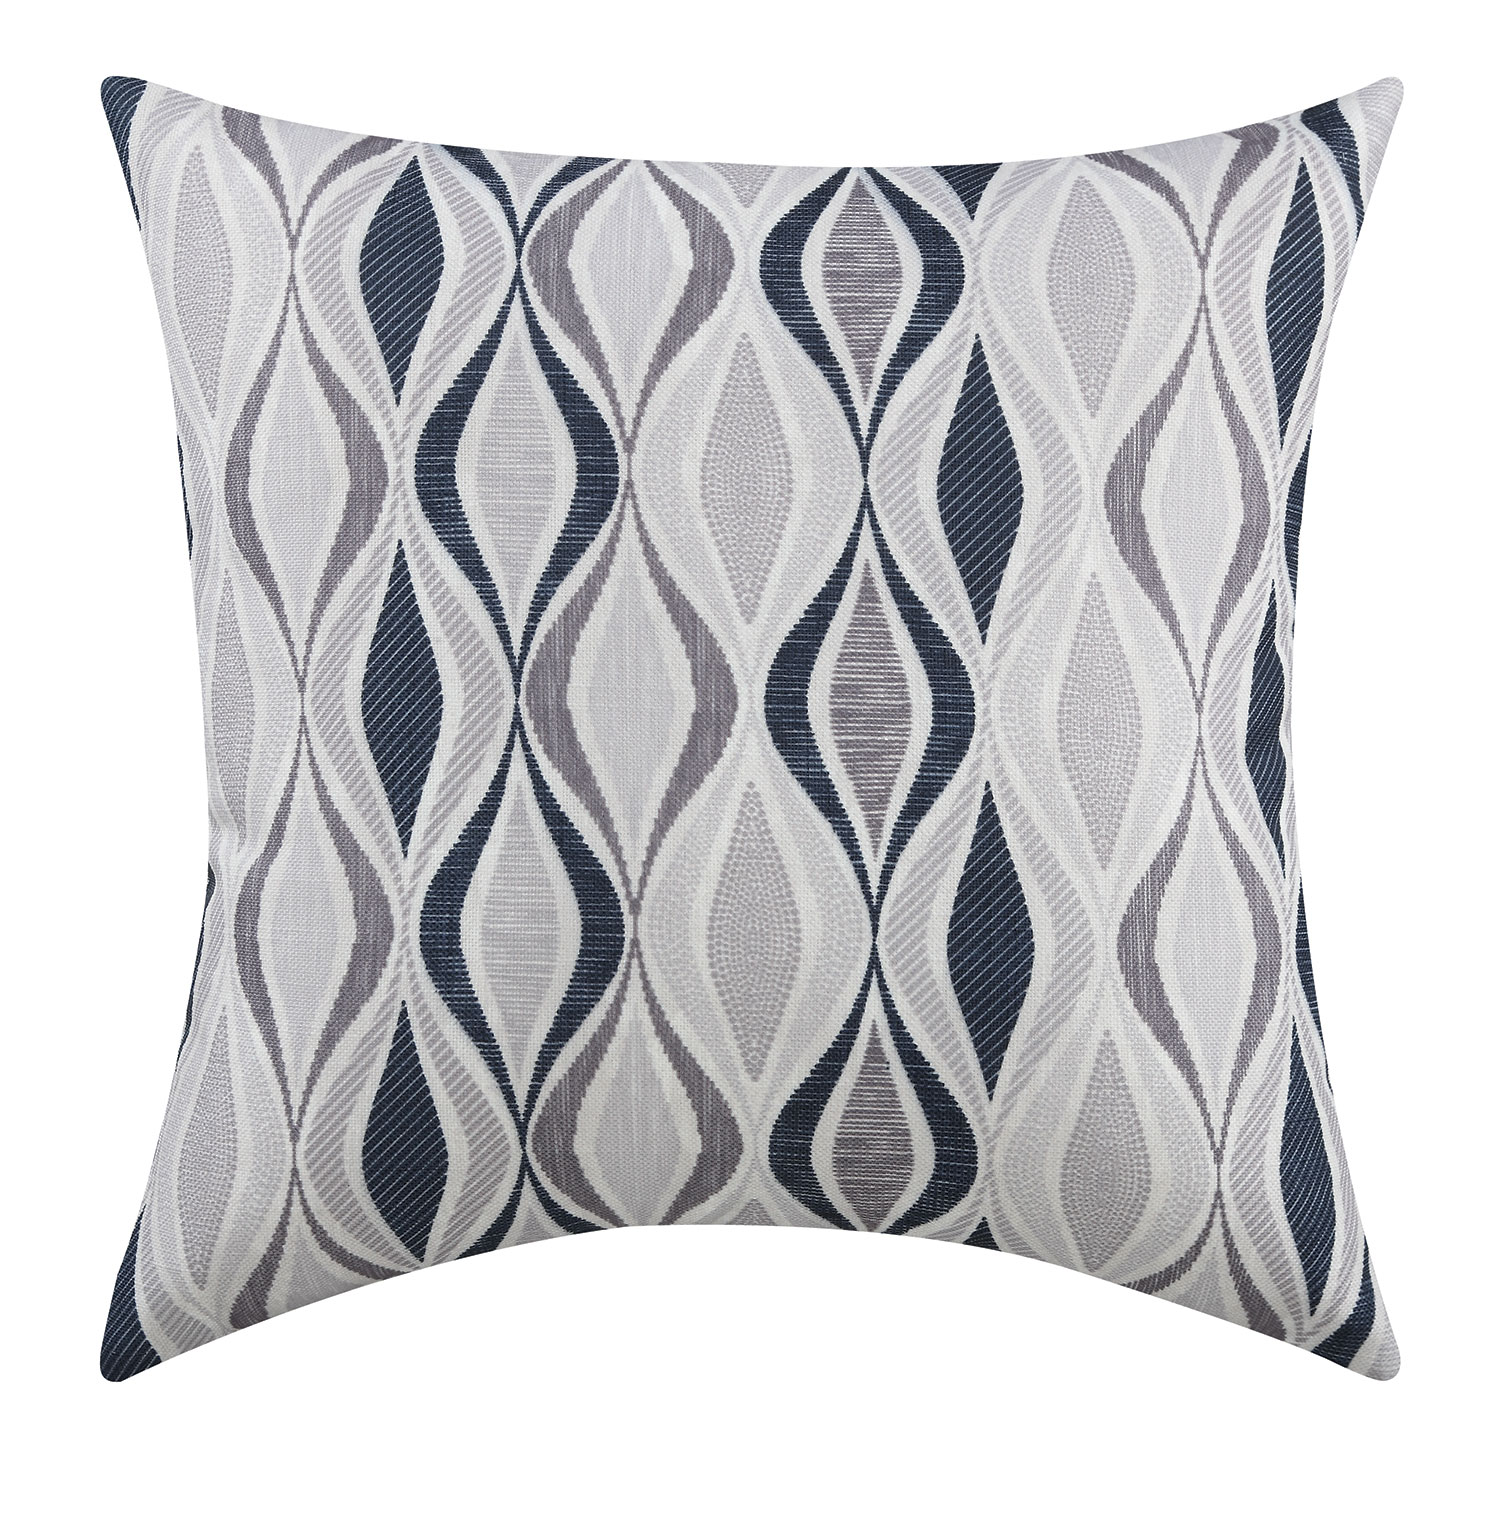 Coaster Throw Pillows Pillow - Item Number: 905098